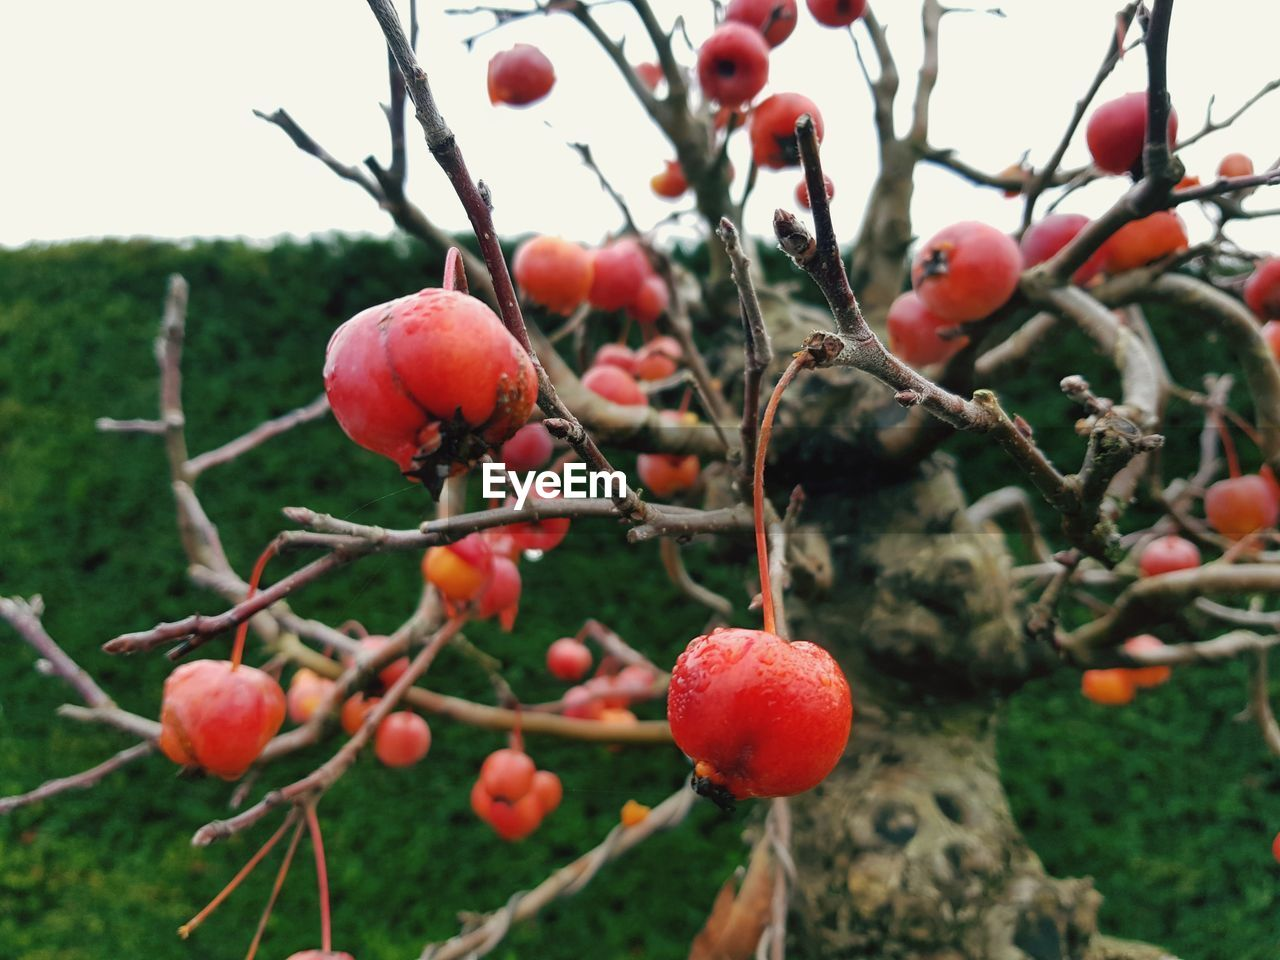 healthy eating, fruit, food, food and drink, growth, plant, tree, freshness, nature, day, focus on foreground, close-up, berry fruit, no people, red, branch, wellbeing, beauty in nature, rose hip, outdoors, ripe, rowanberry